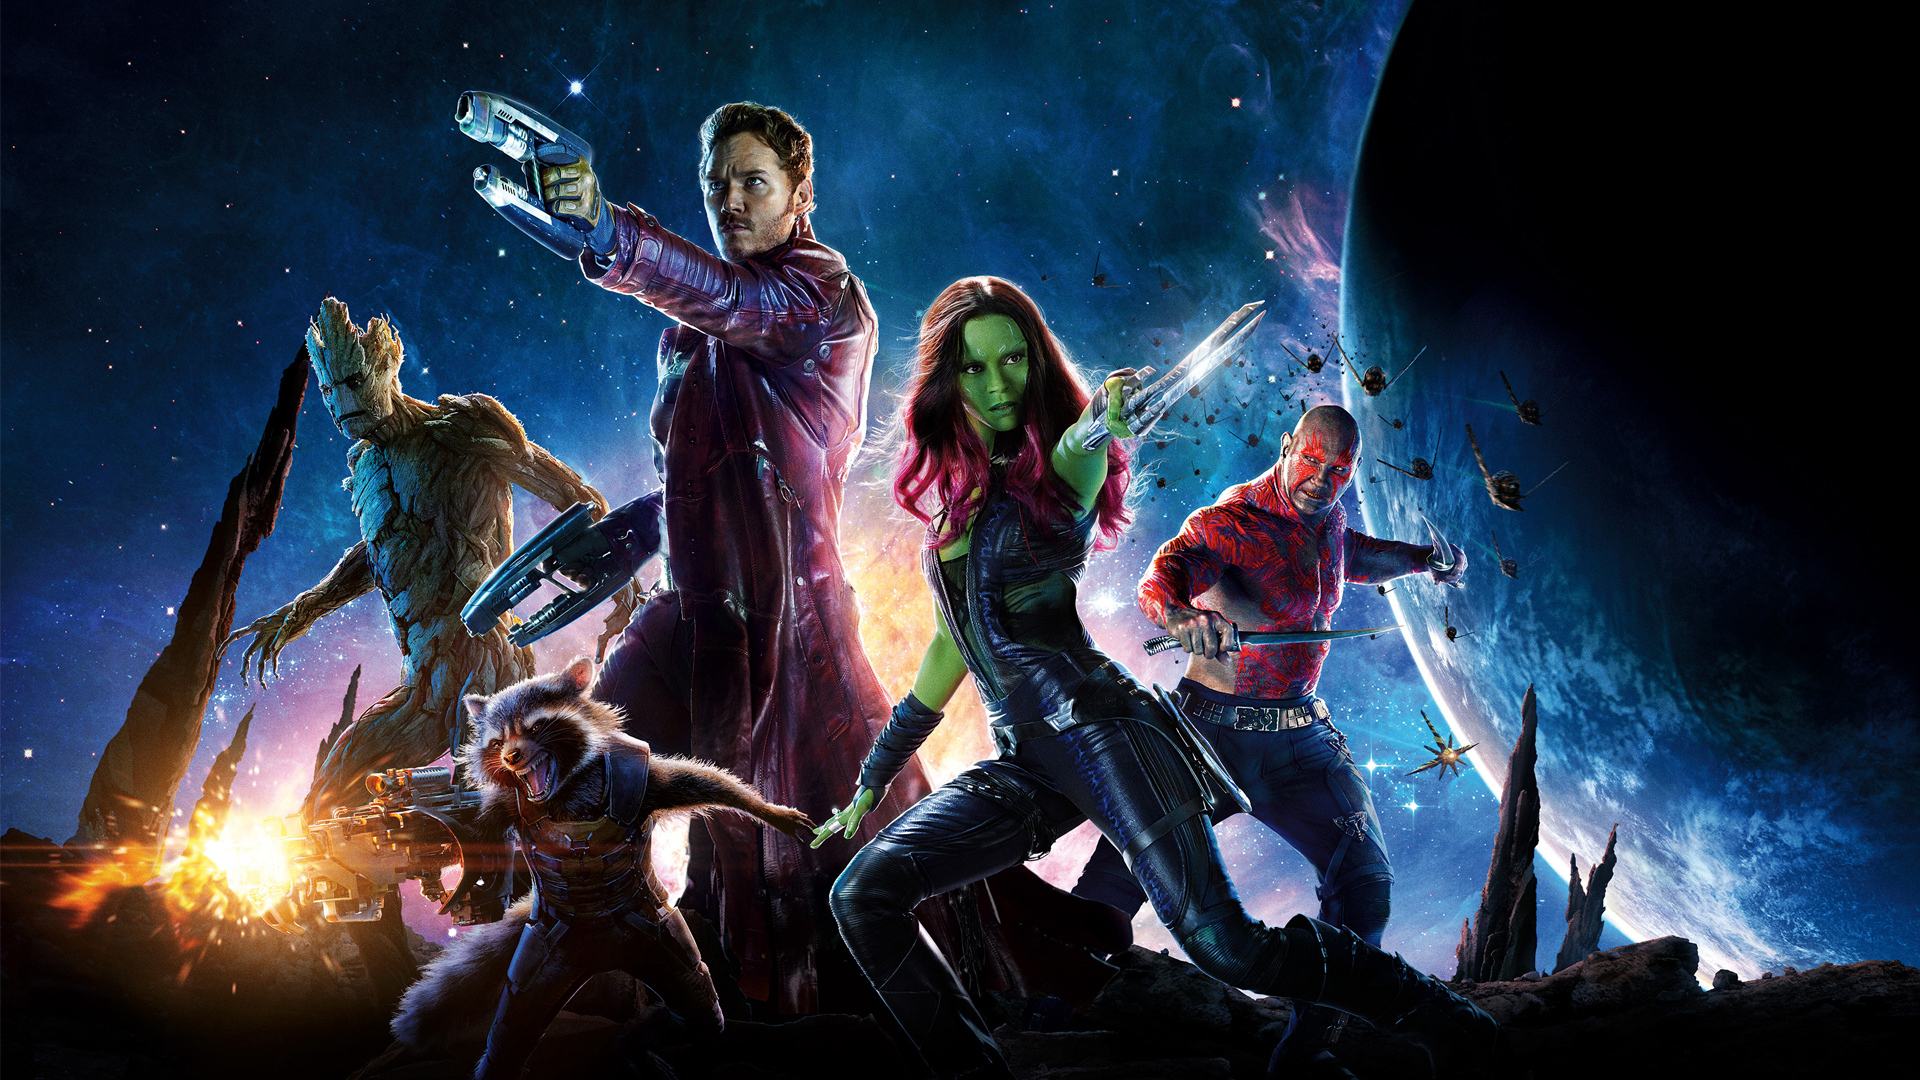 Guardians Of The Galaxy Hd Wallpaper: Guardians Of The Galaxy 2 HD Wallpapers Free Download